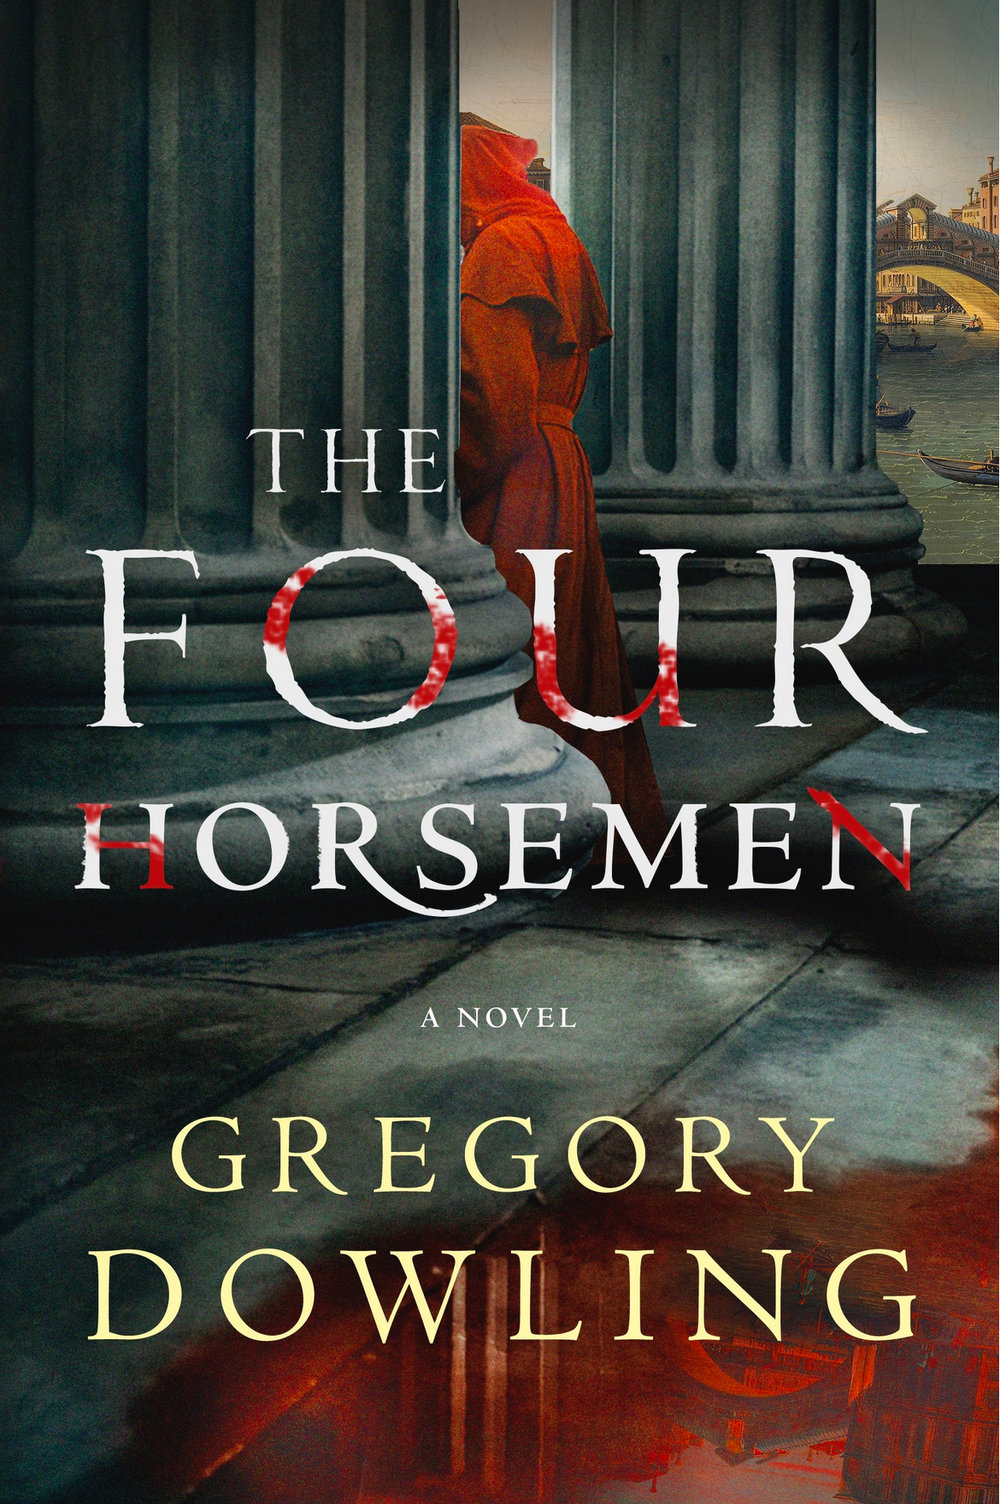 the four horsemen by Gregory Dowling